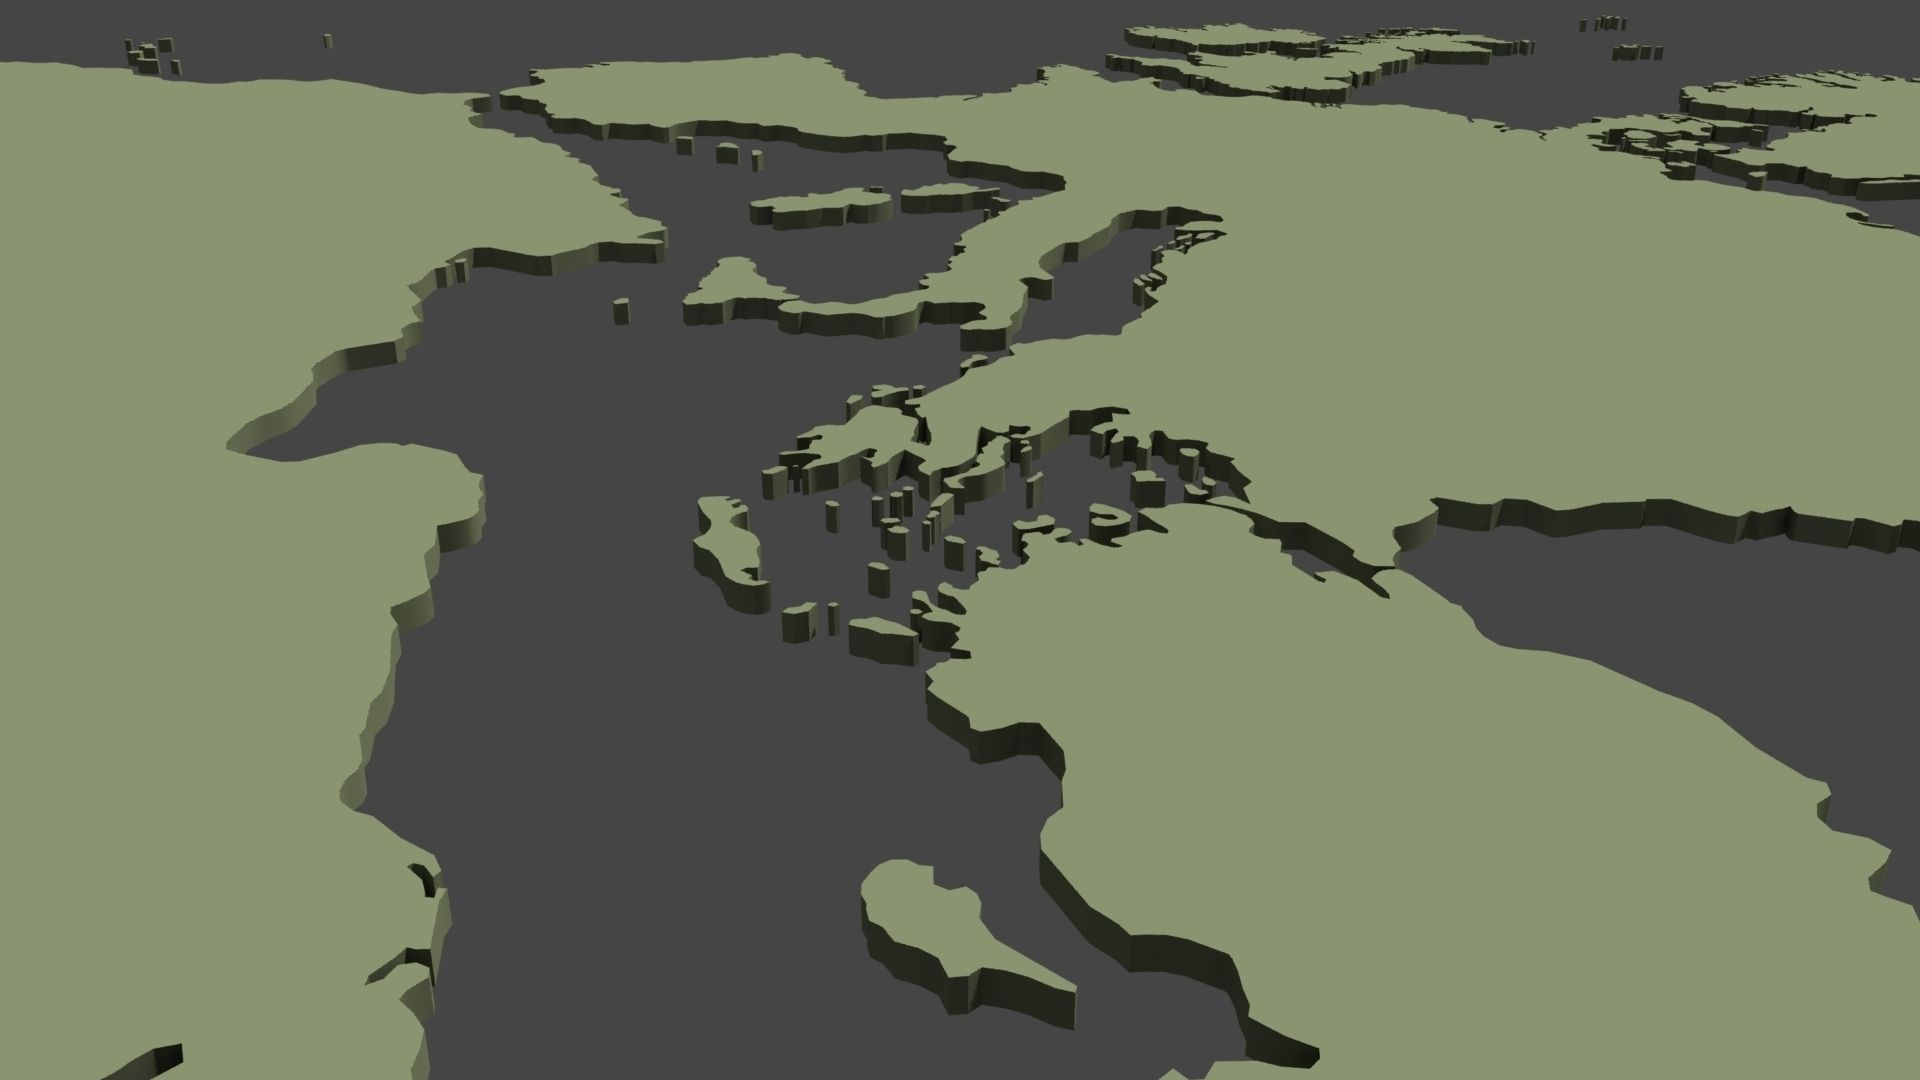 Vr ar ready 3d world map planisphere cgtrader 3d world map planisphere 3d model low poly obj 3ds fbx c4d ma mb mtl gumiabroncs Gallery